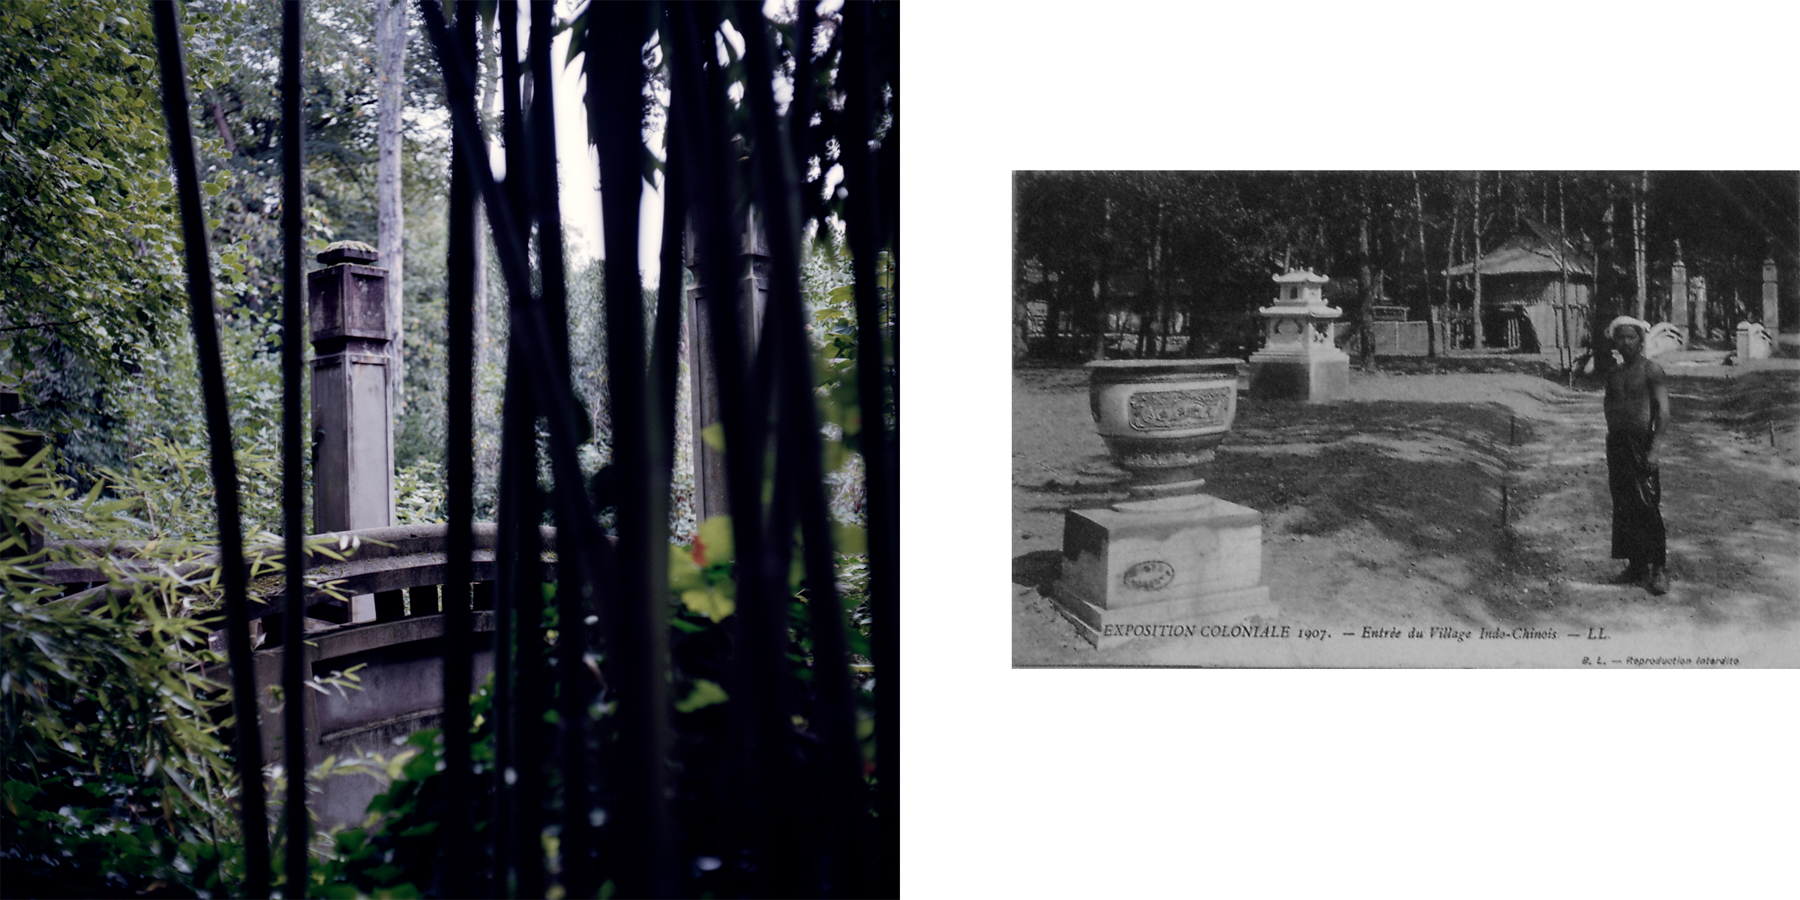 """Left: Le Pont Tonkinois/the Tonkinese Bridge, once the entrance to the """"Indochinese living village,"""" is now surrounded by overgrown bamboo. Right: A historical photo depicts the entrance to the Indochinese living village during the 1907 colonial exposition. This section of the park featured live elephant training shown alongside people from mainland southeast Asia. Nogent-sur-Marne, France."""